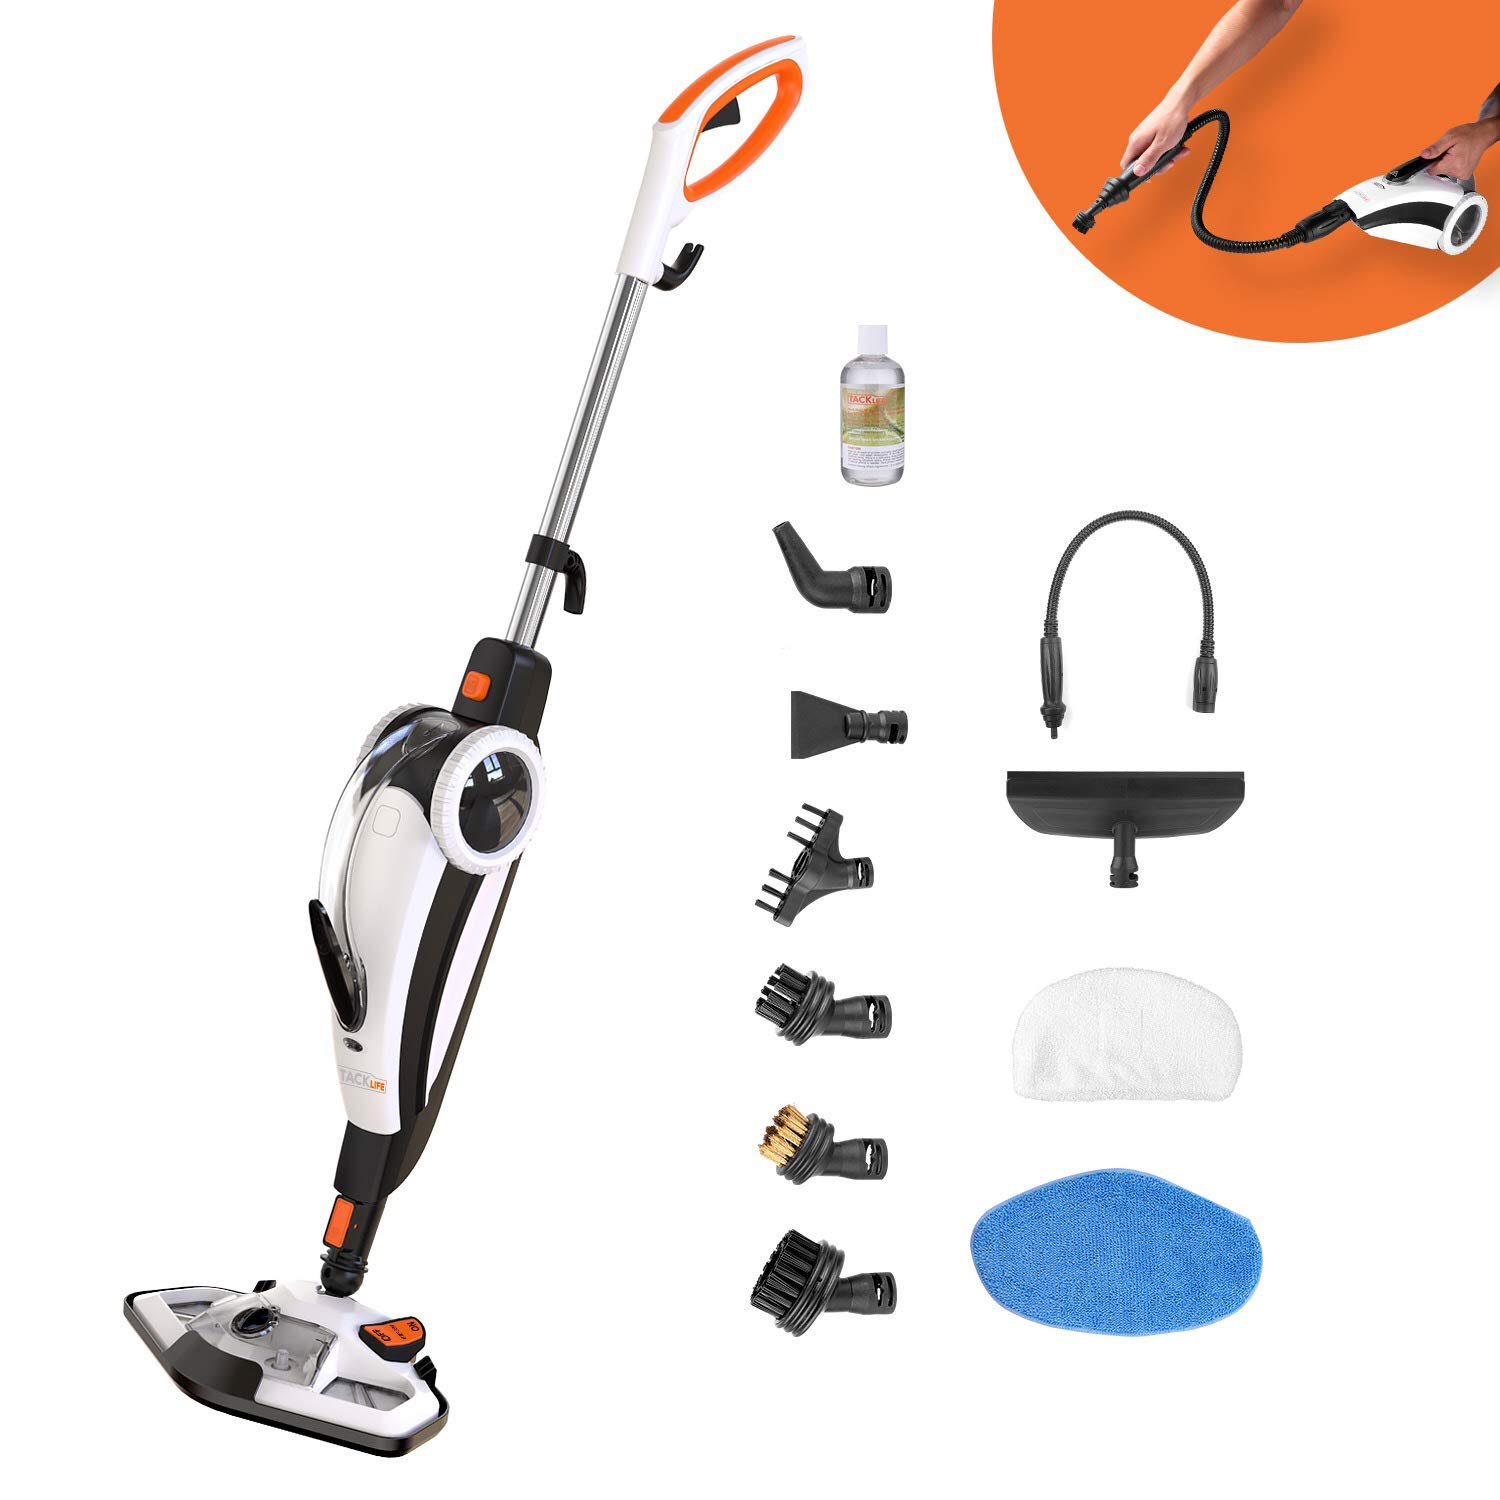 TACKLIFE Steam Mop, Steam Cleaner Multifunction Floor Steamer and Hand-held Steam Floor Mop 2 in 1, 1400W Portable Electric Scrubber Heating in 5s, with 11 Accessories by TACKLIFE